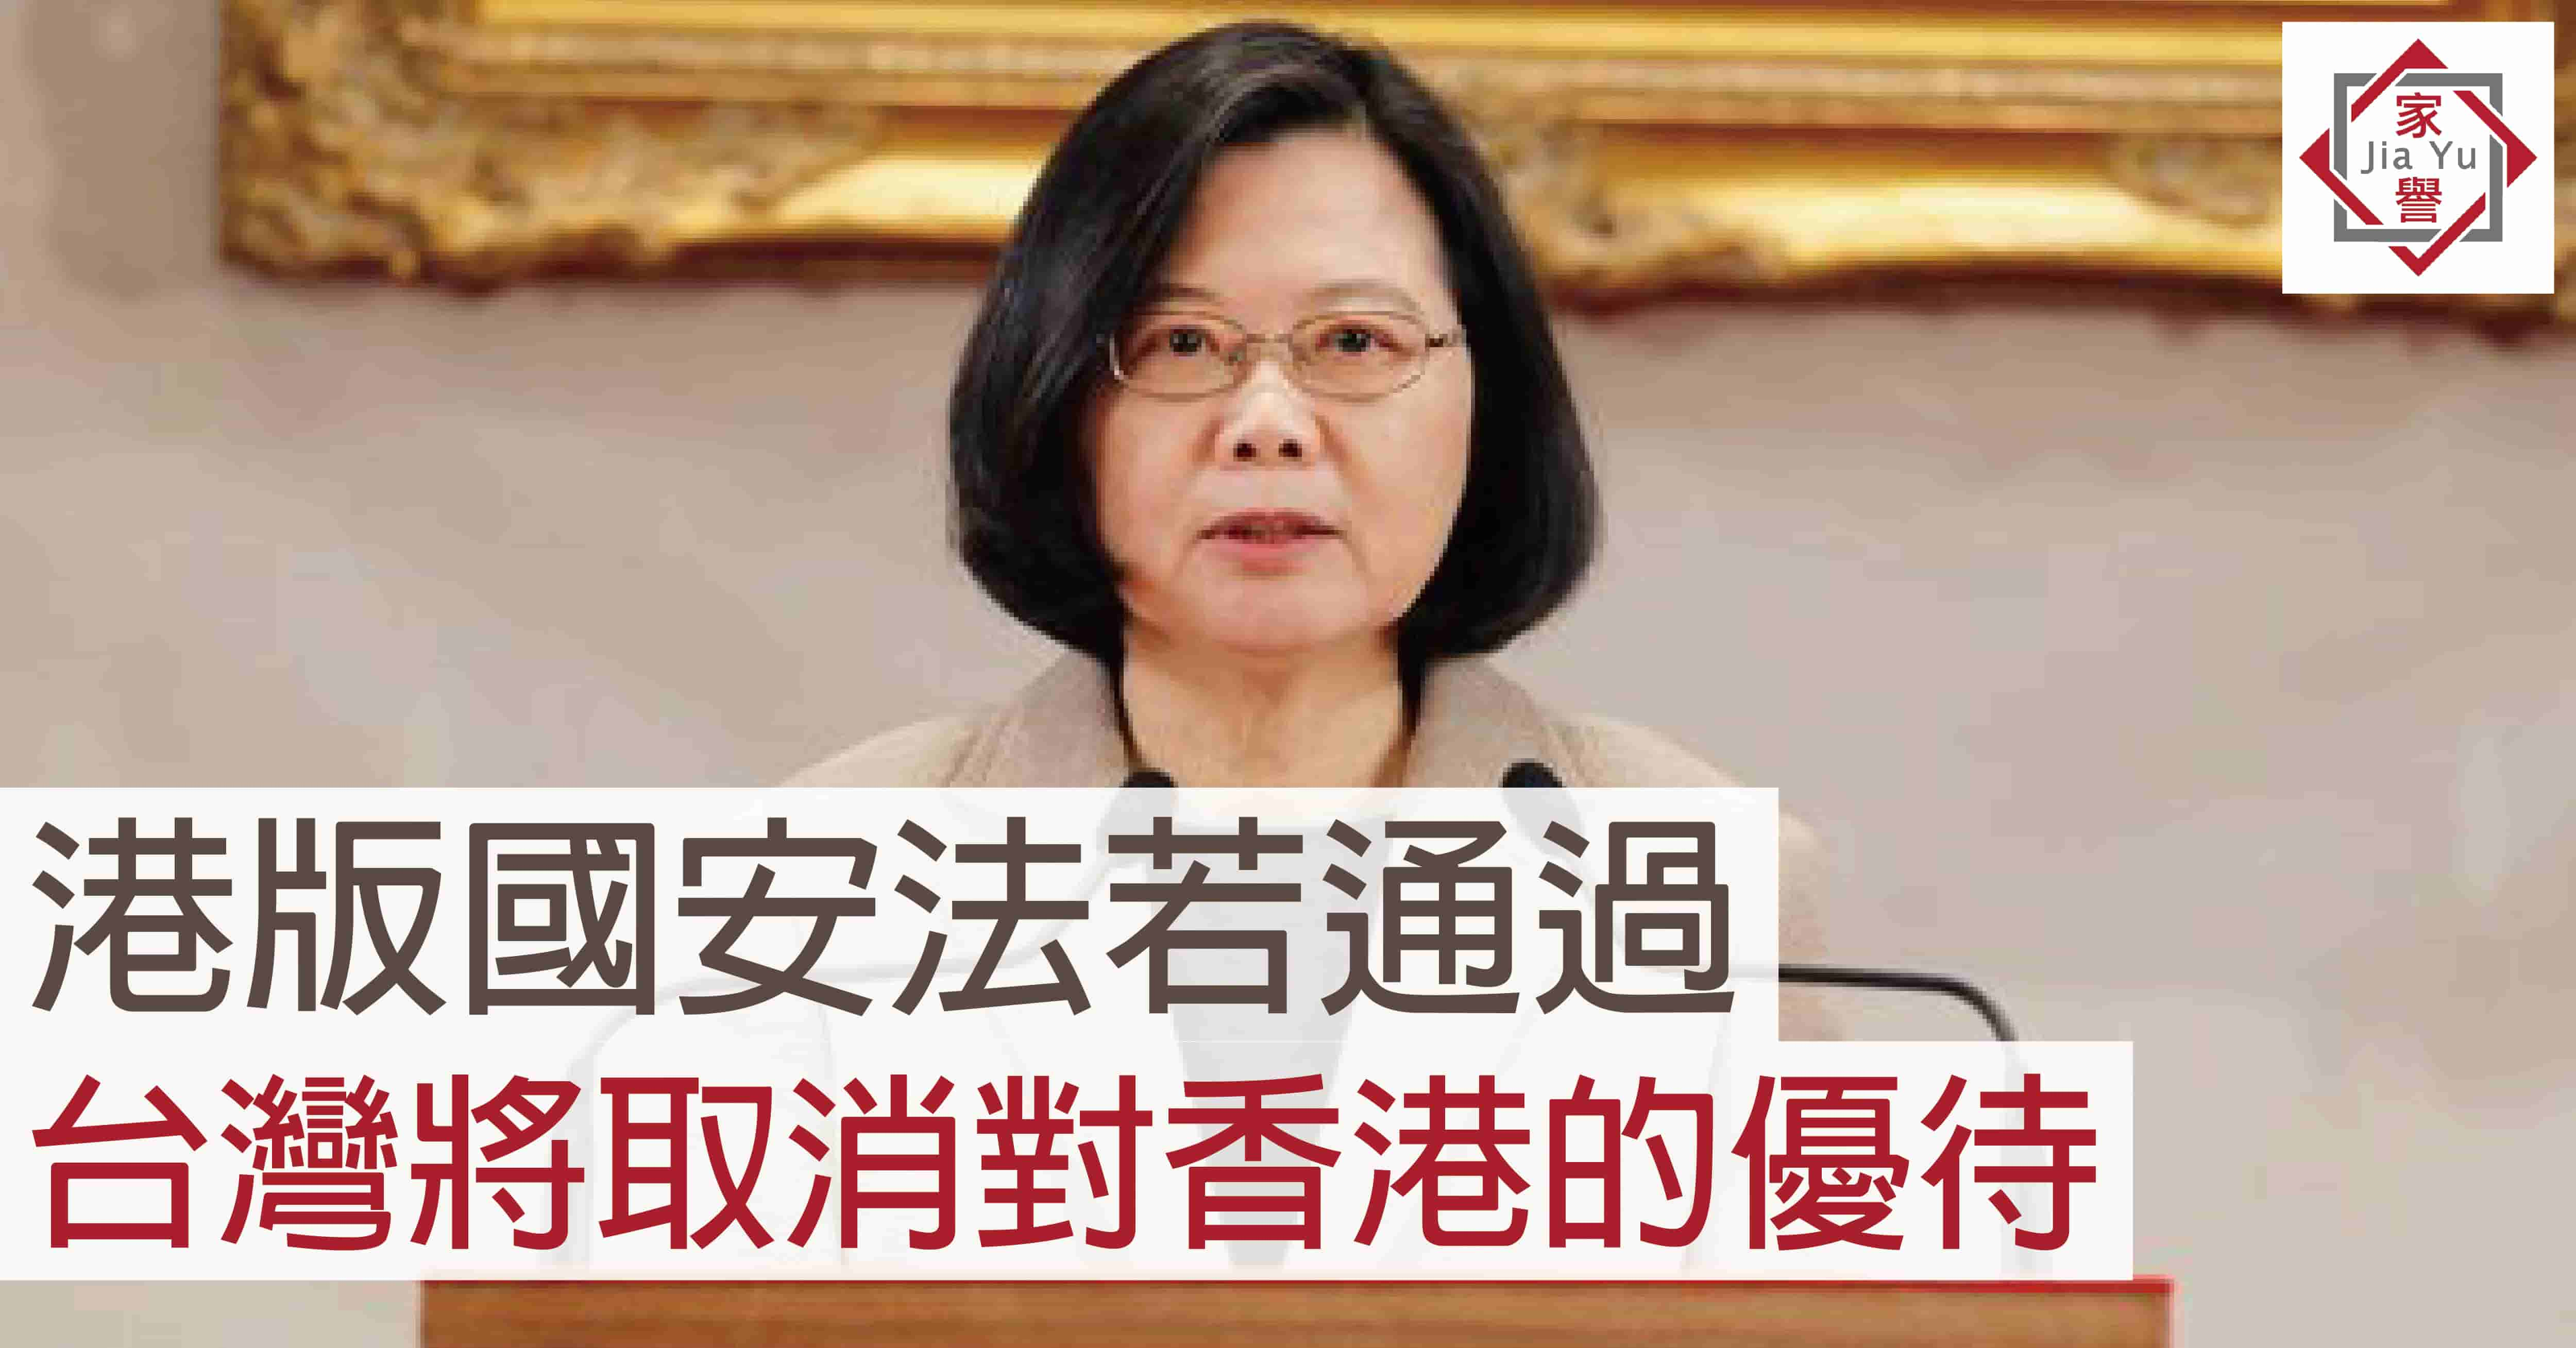 """Taiwan President Tsai Ing-wen said the passage of Hong Kong's National Security law could lead to the end of Taiwan's """"Hong Kong and Macao regulations"""" and the removal of preferential treatment for Hong Kong."""